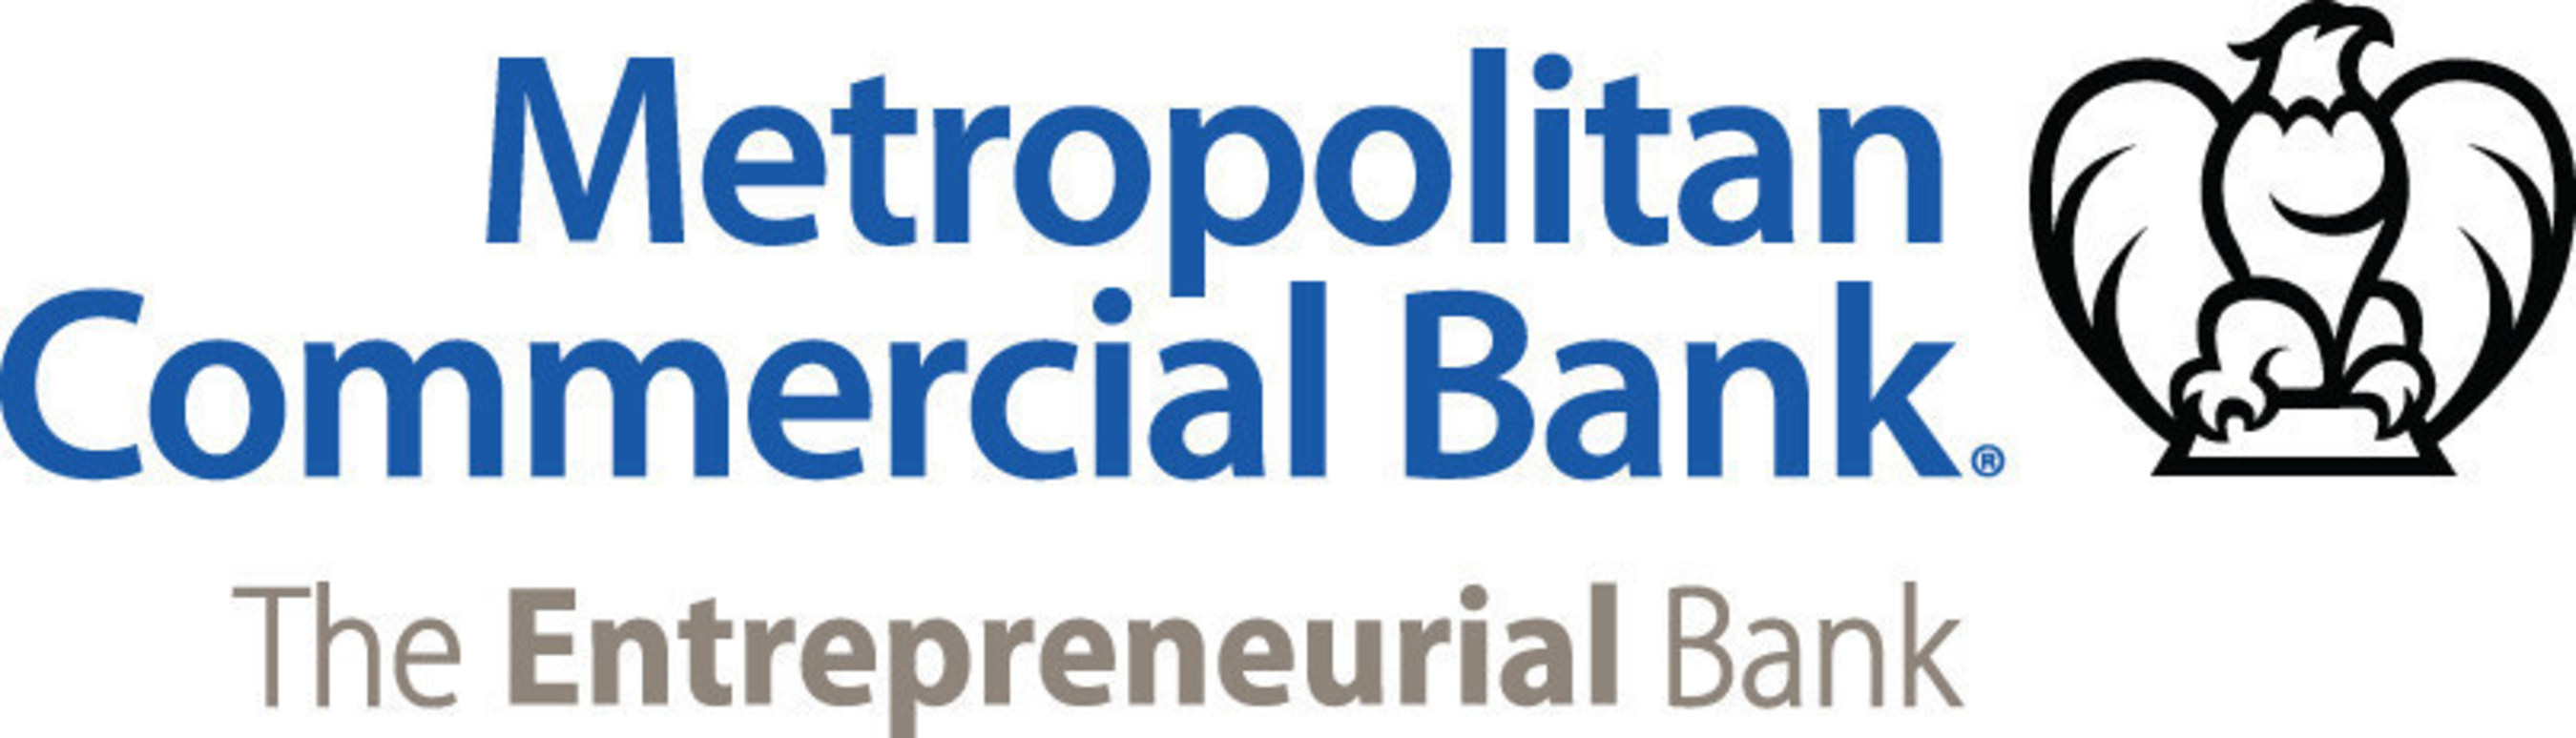 Metropolitan Commercial Bank logo